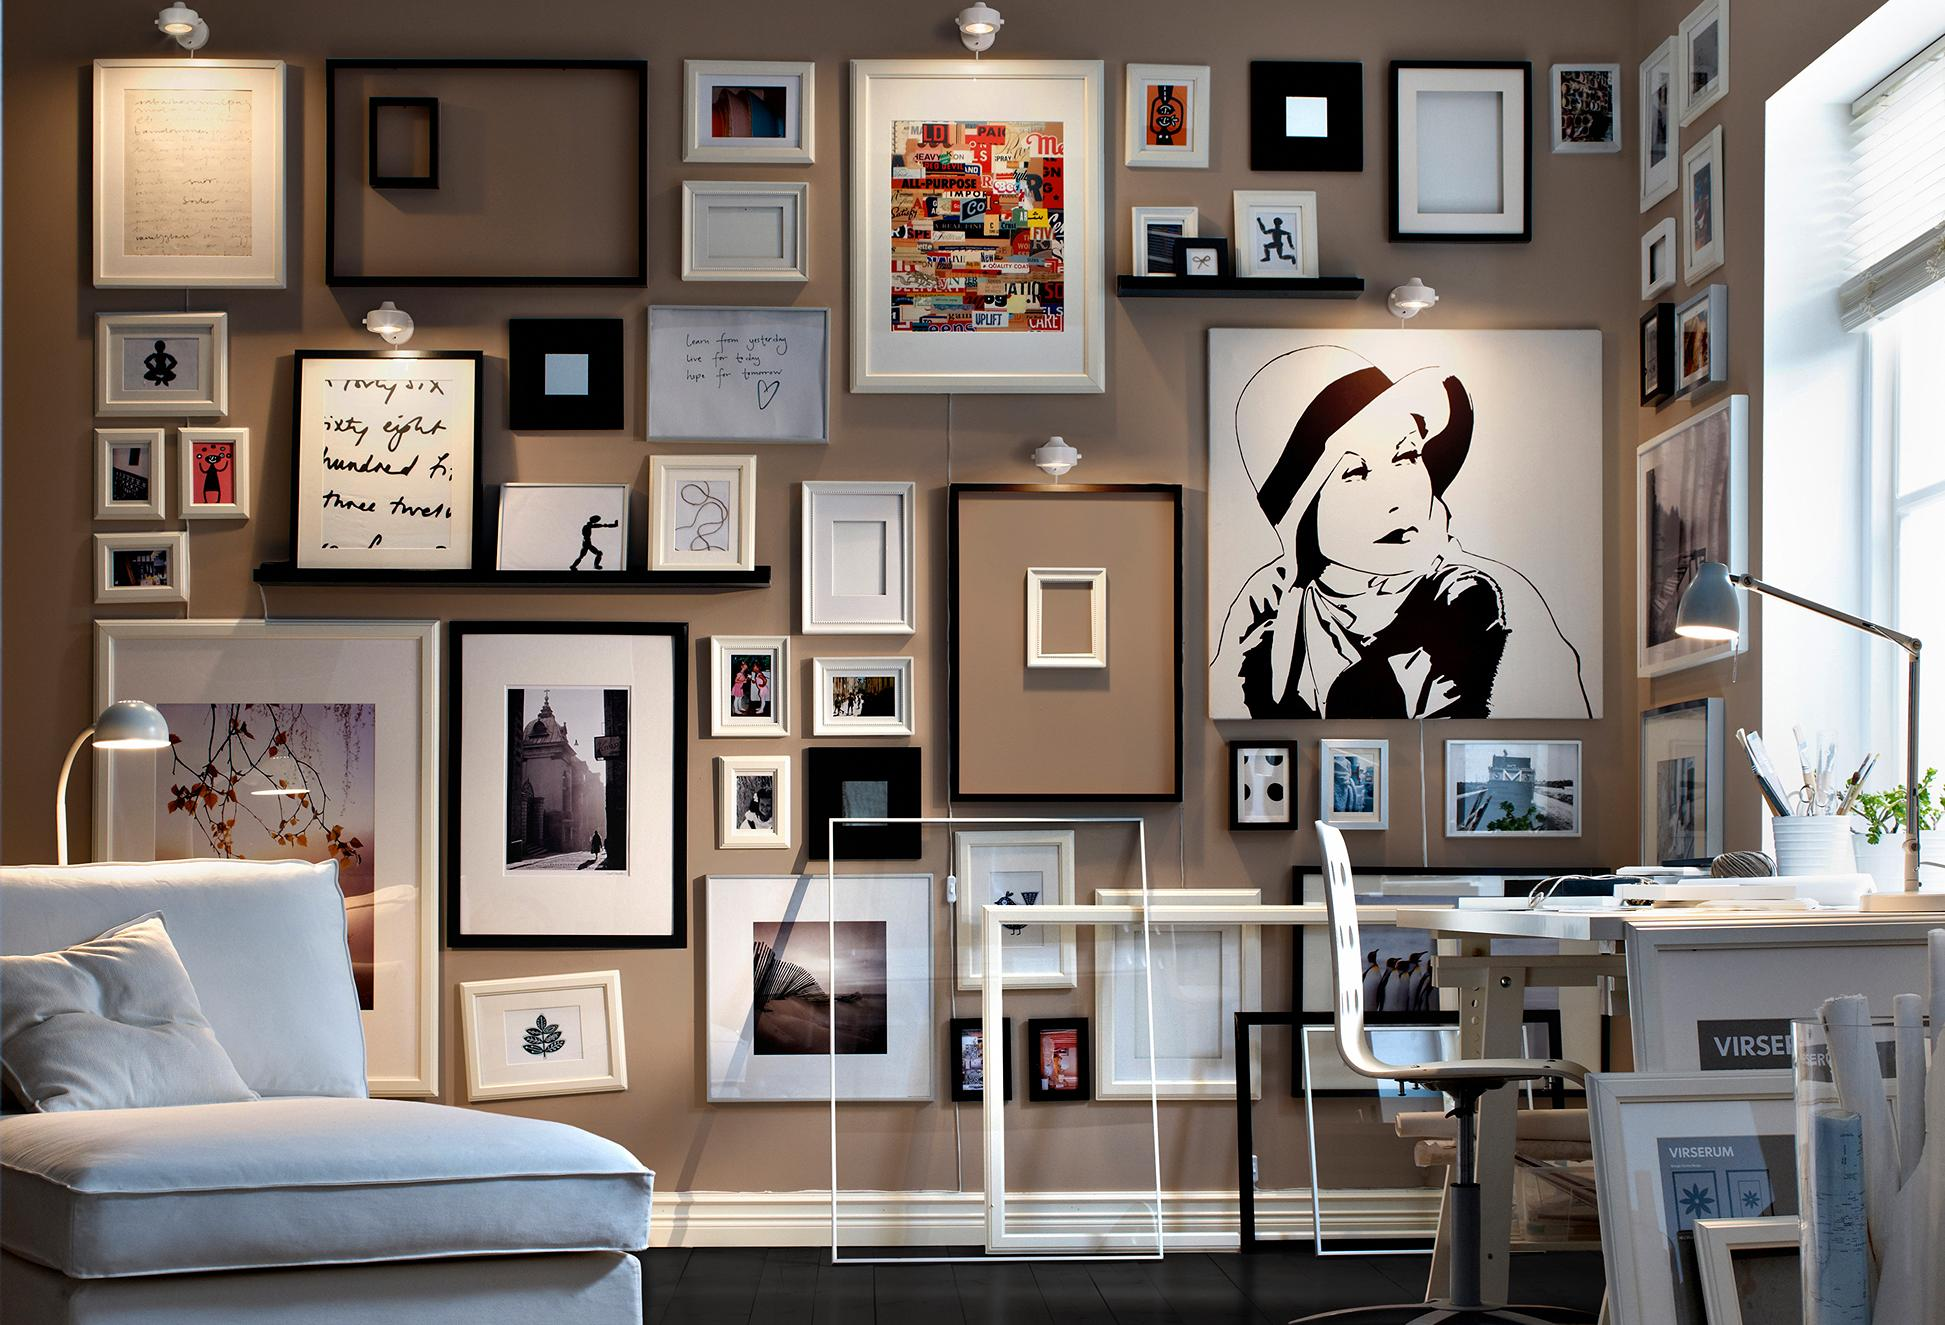 Gallery art wall monochrome framed collection of sketches Art gallery interior design